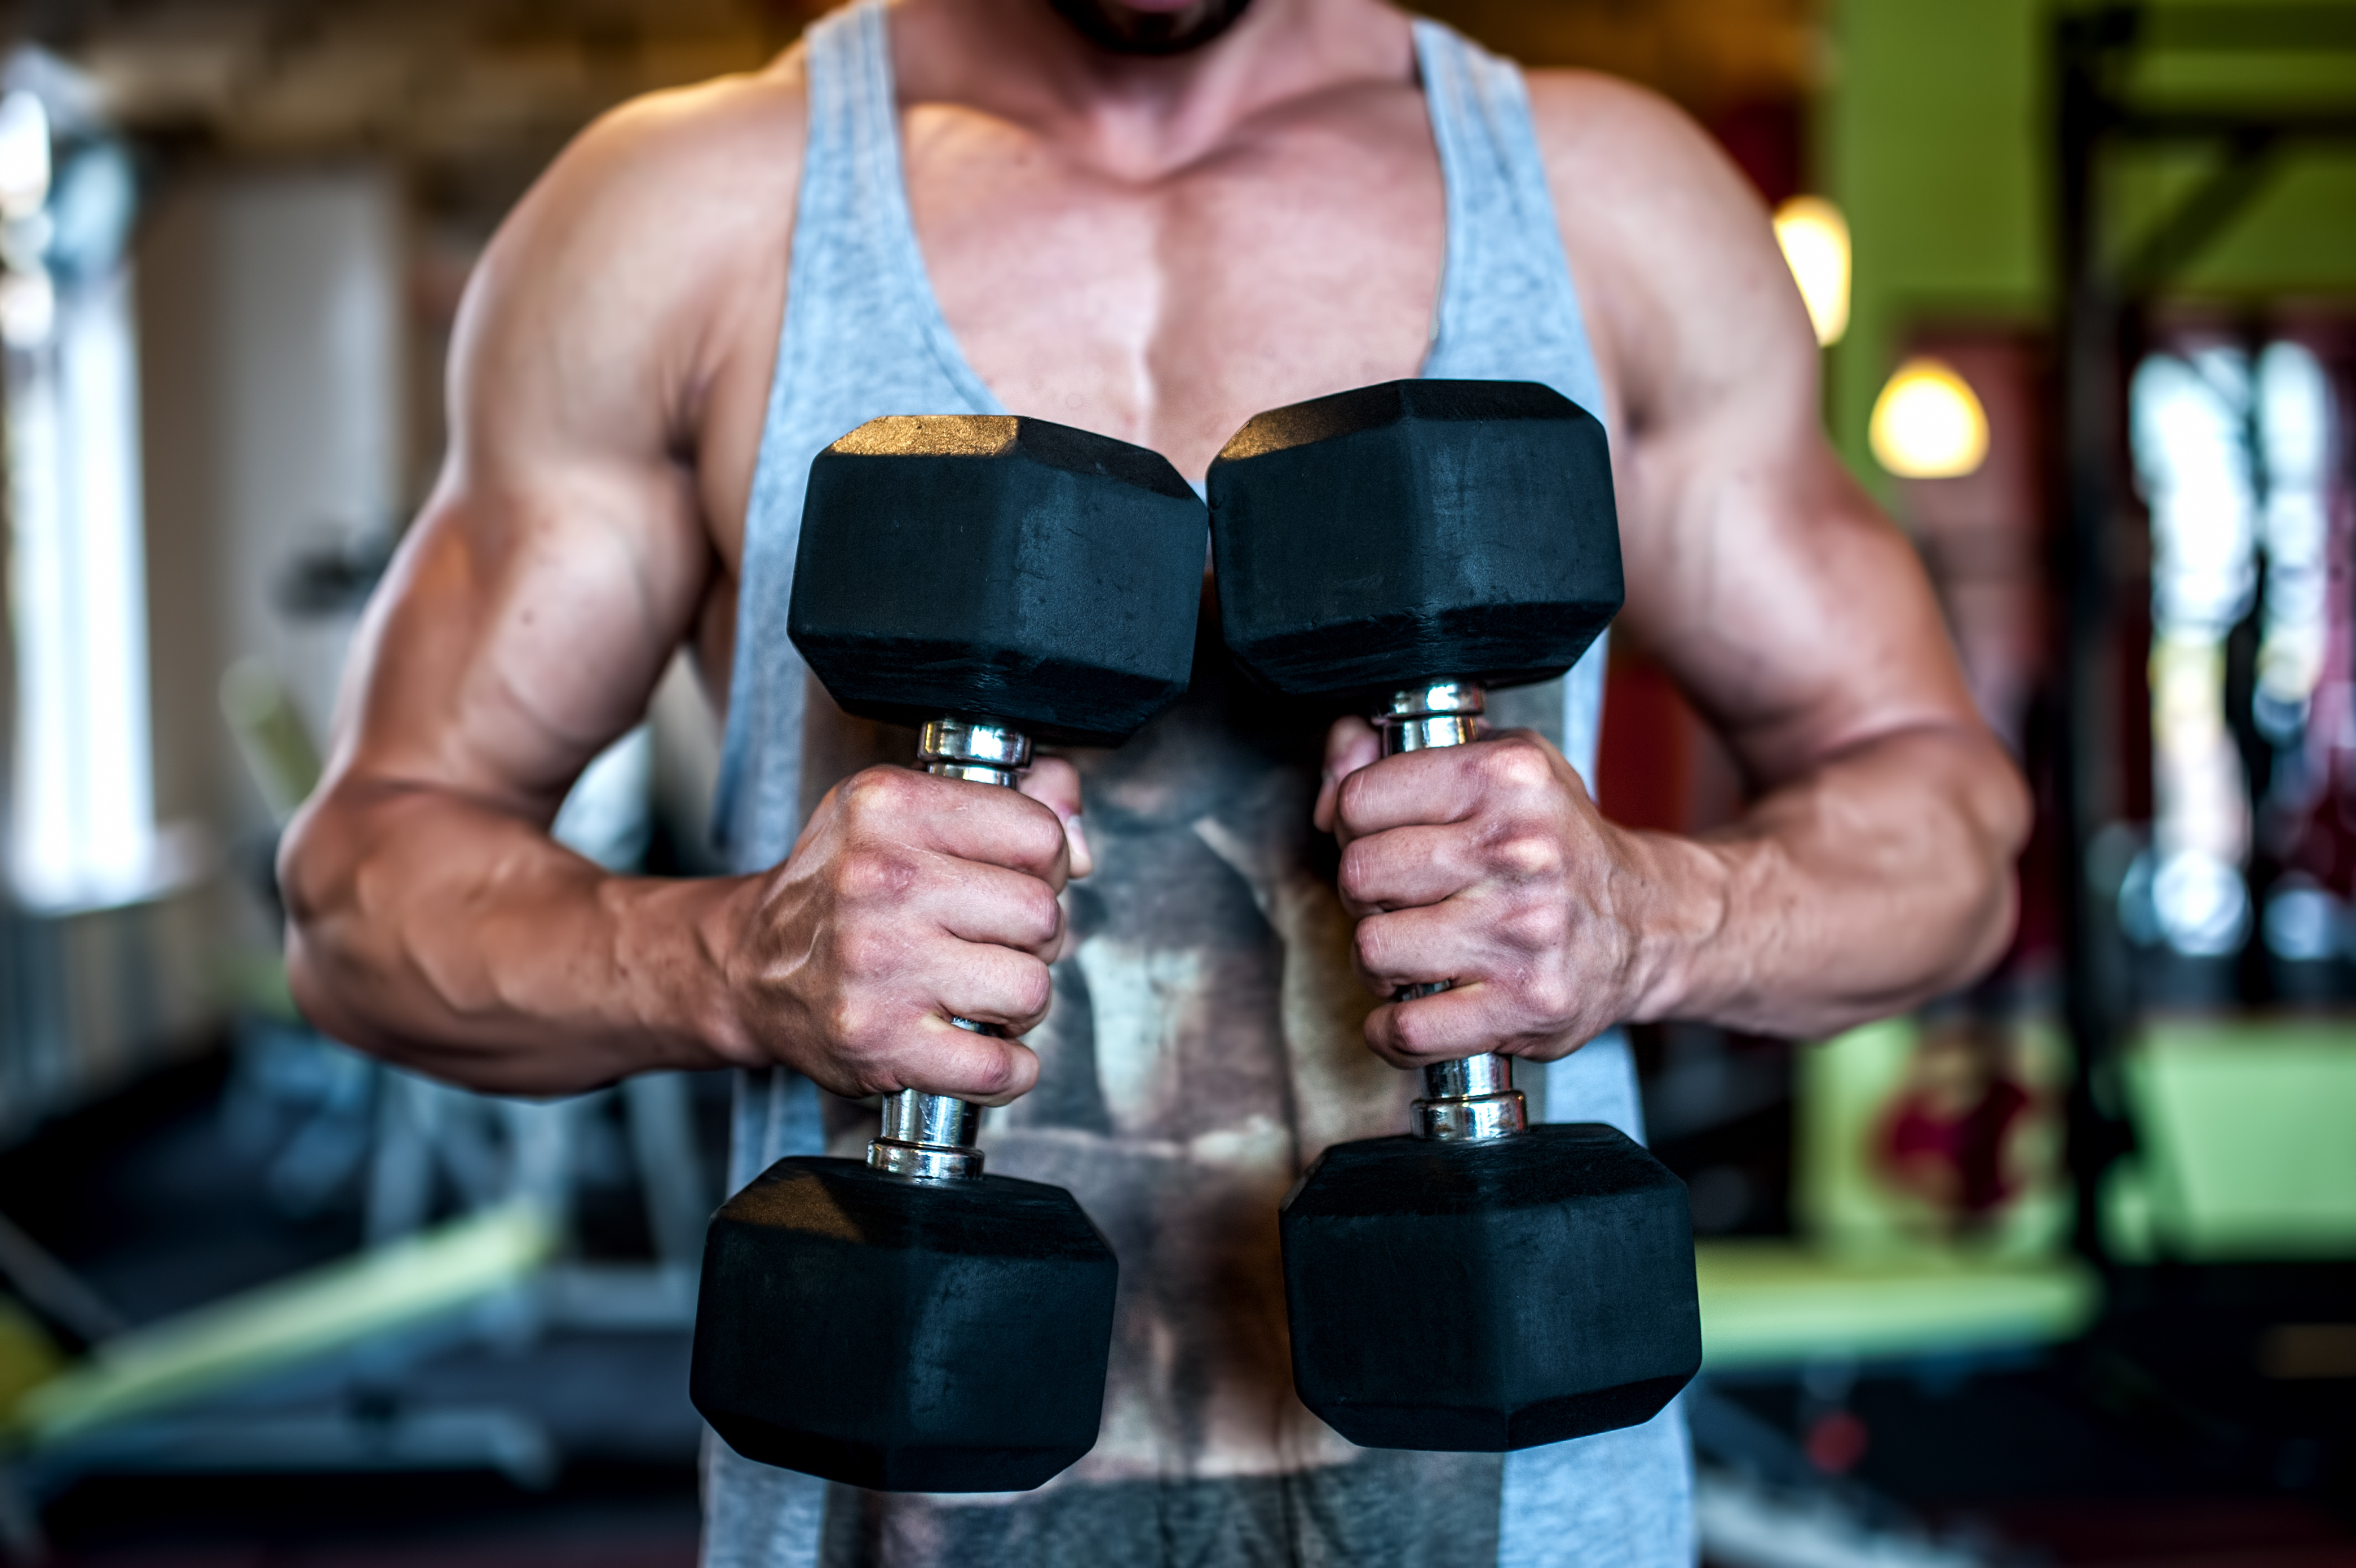 building muscle over 30